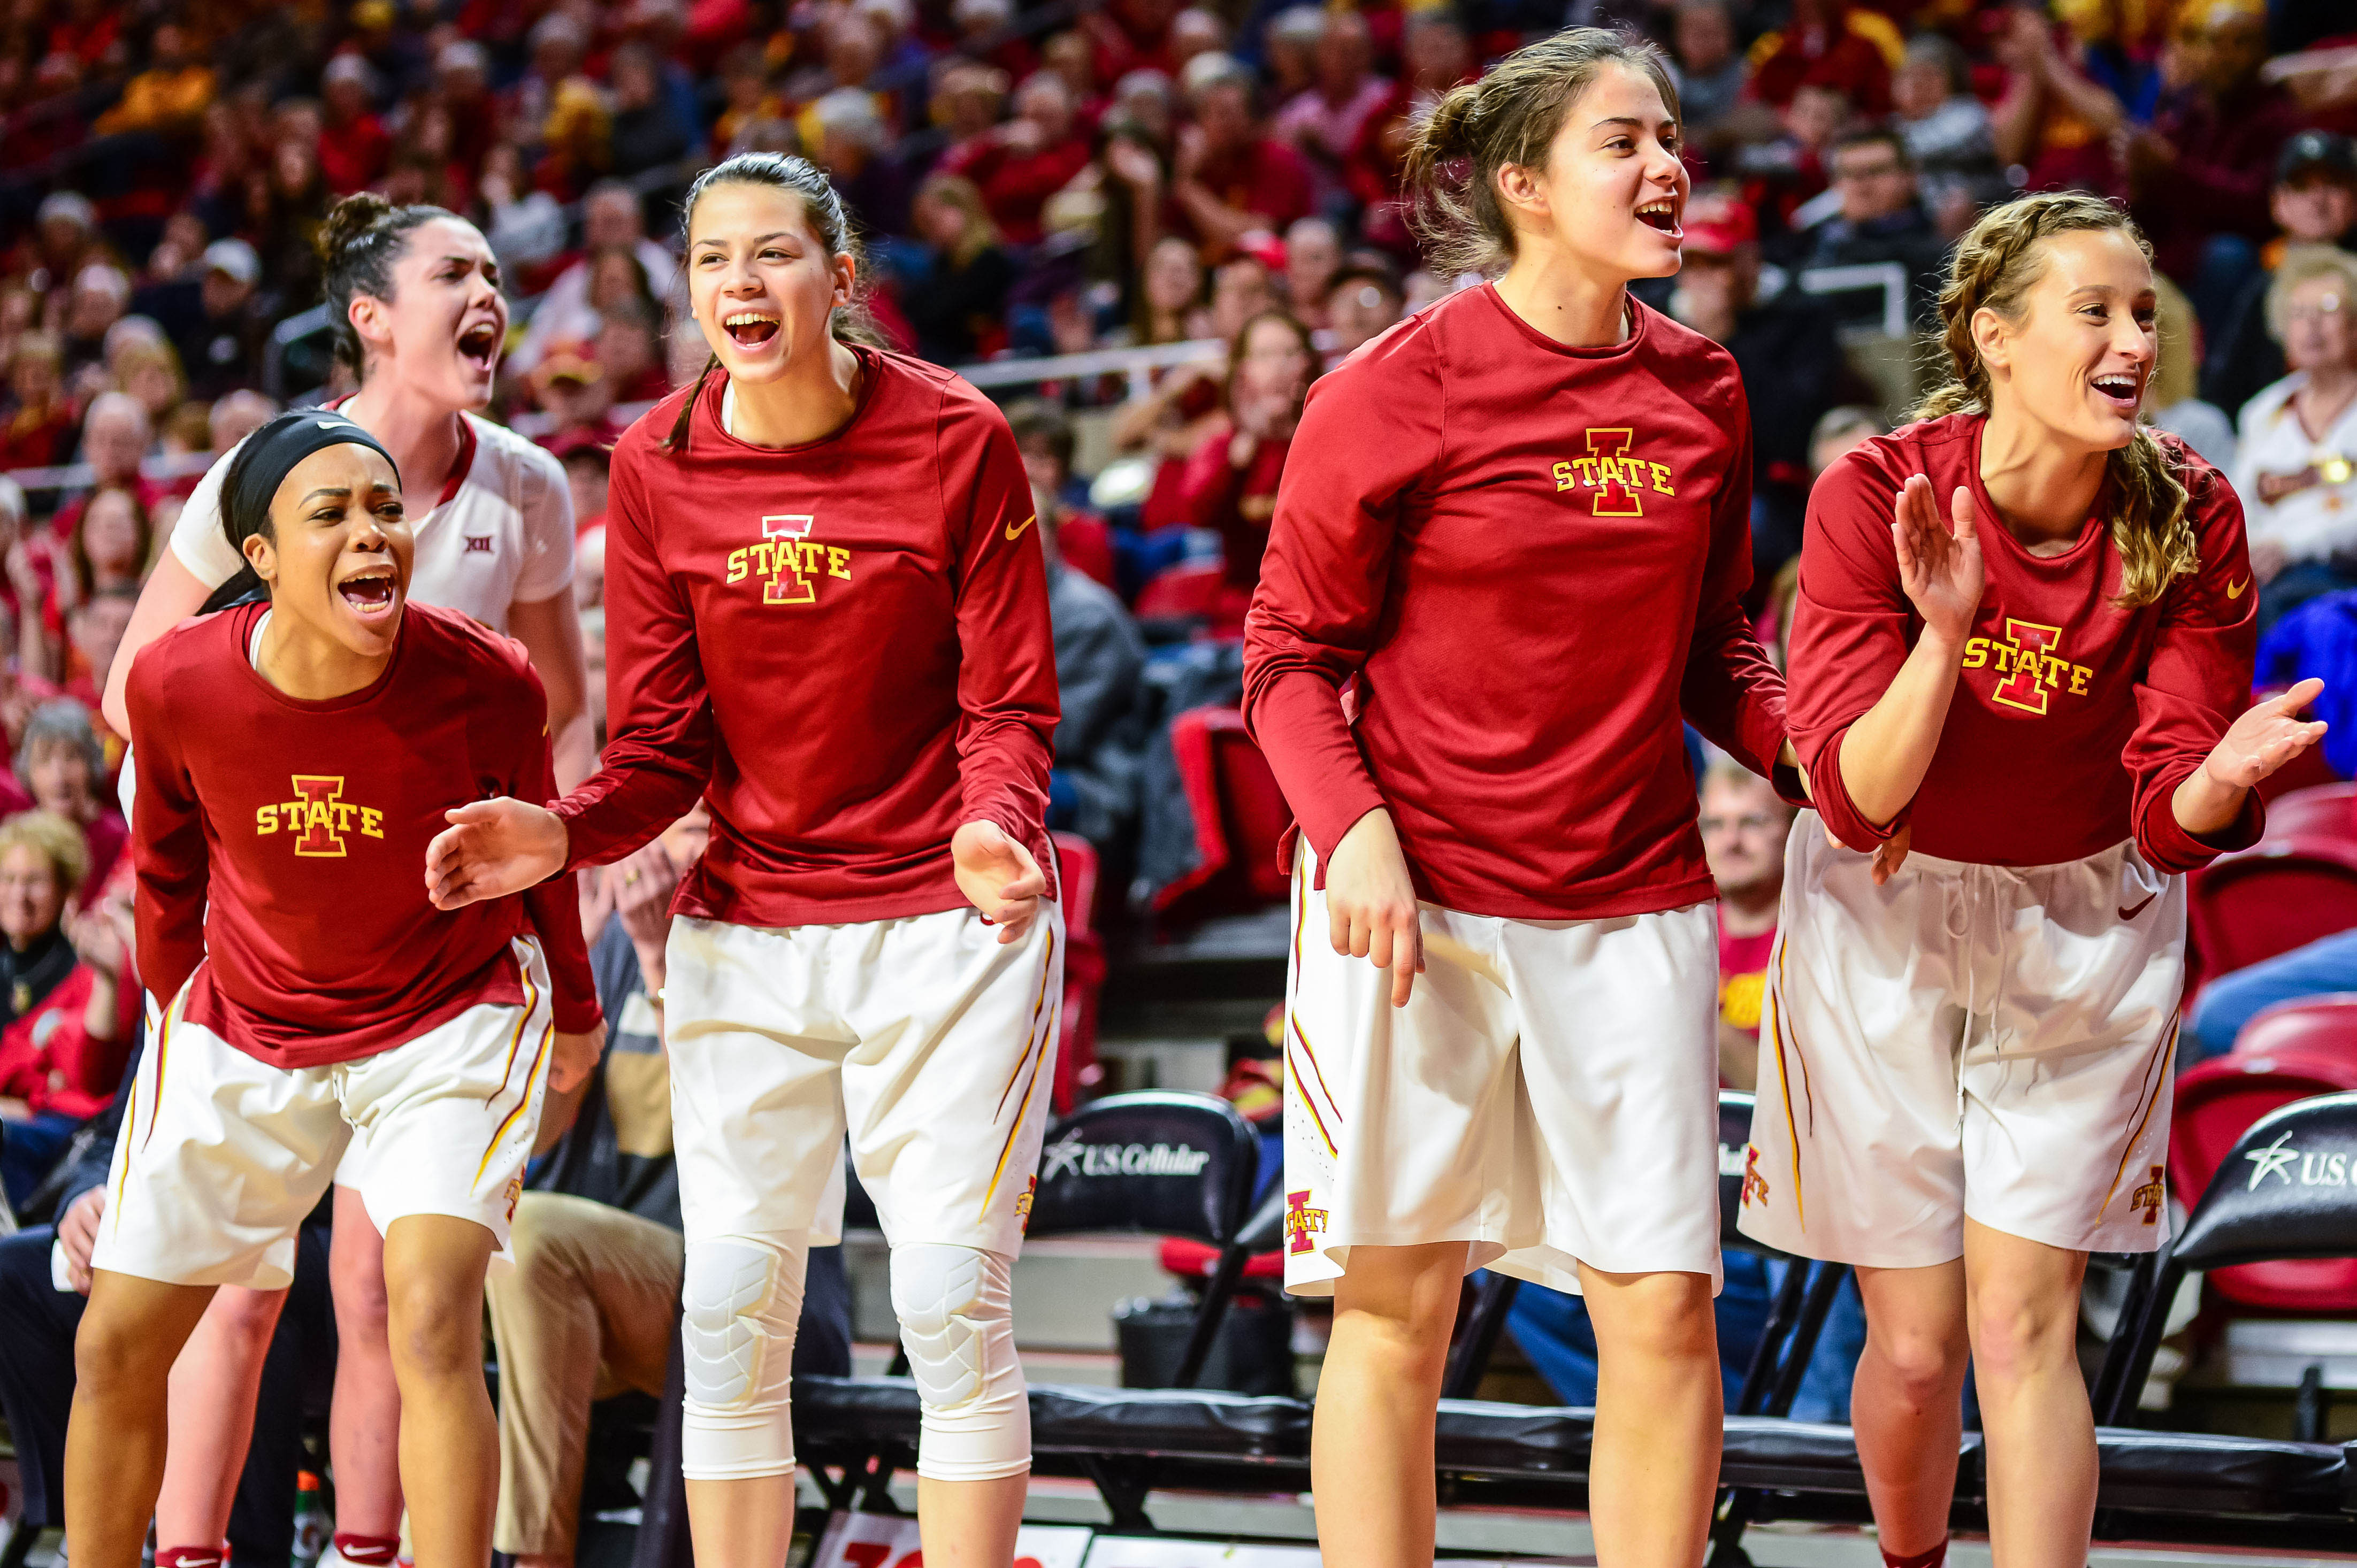 The Iowa State Cyclones bench reacts during a game last season.